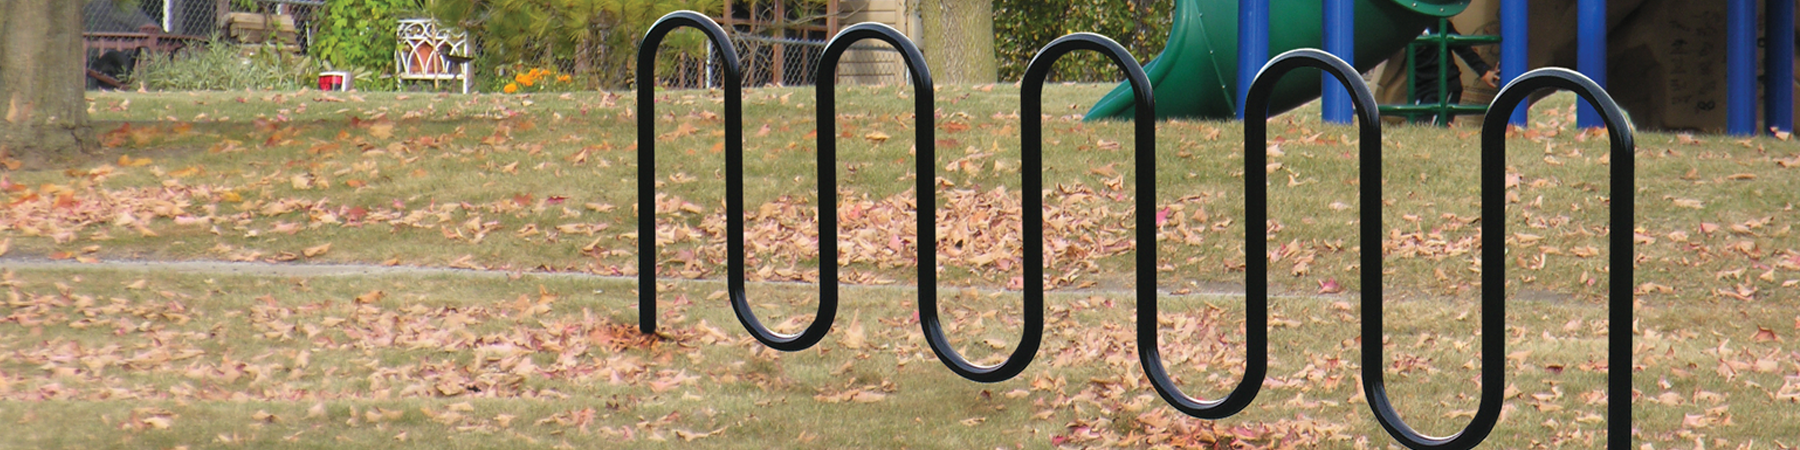 Park It Powder Coated Steel Bike Racks